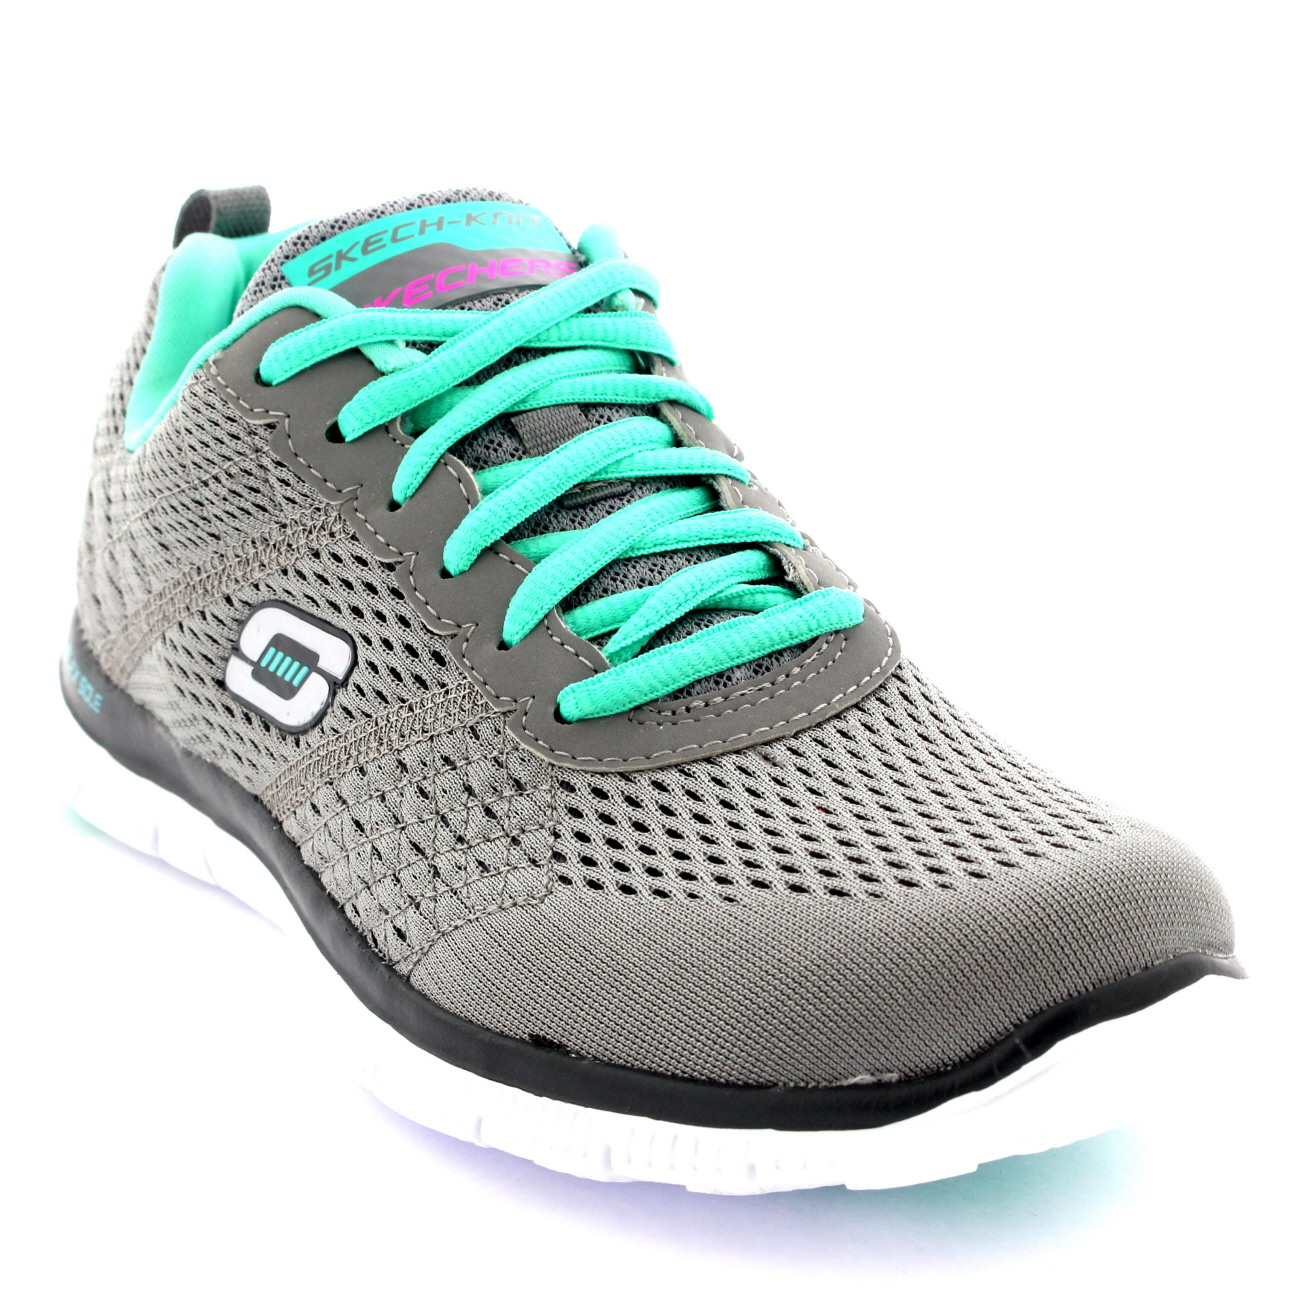 Womens Skechers Flex Appeal Obvious Choice Running Sport